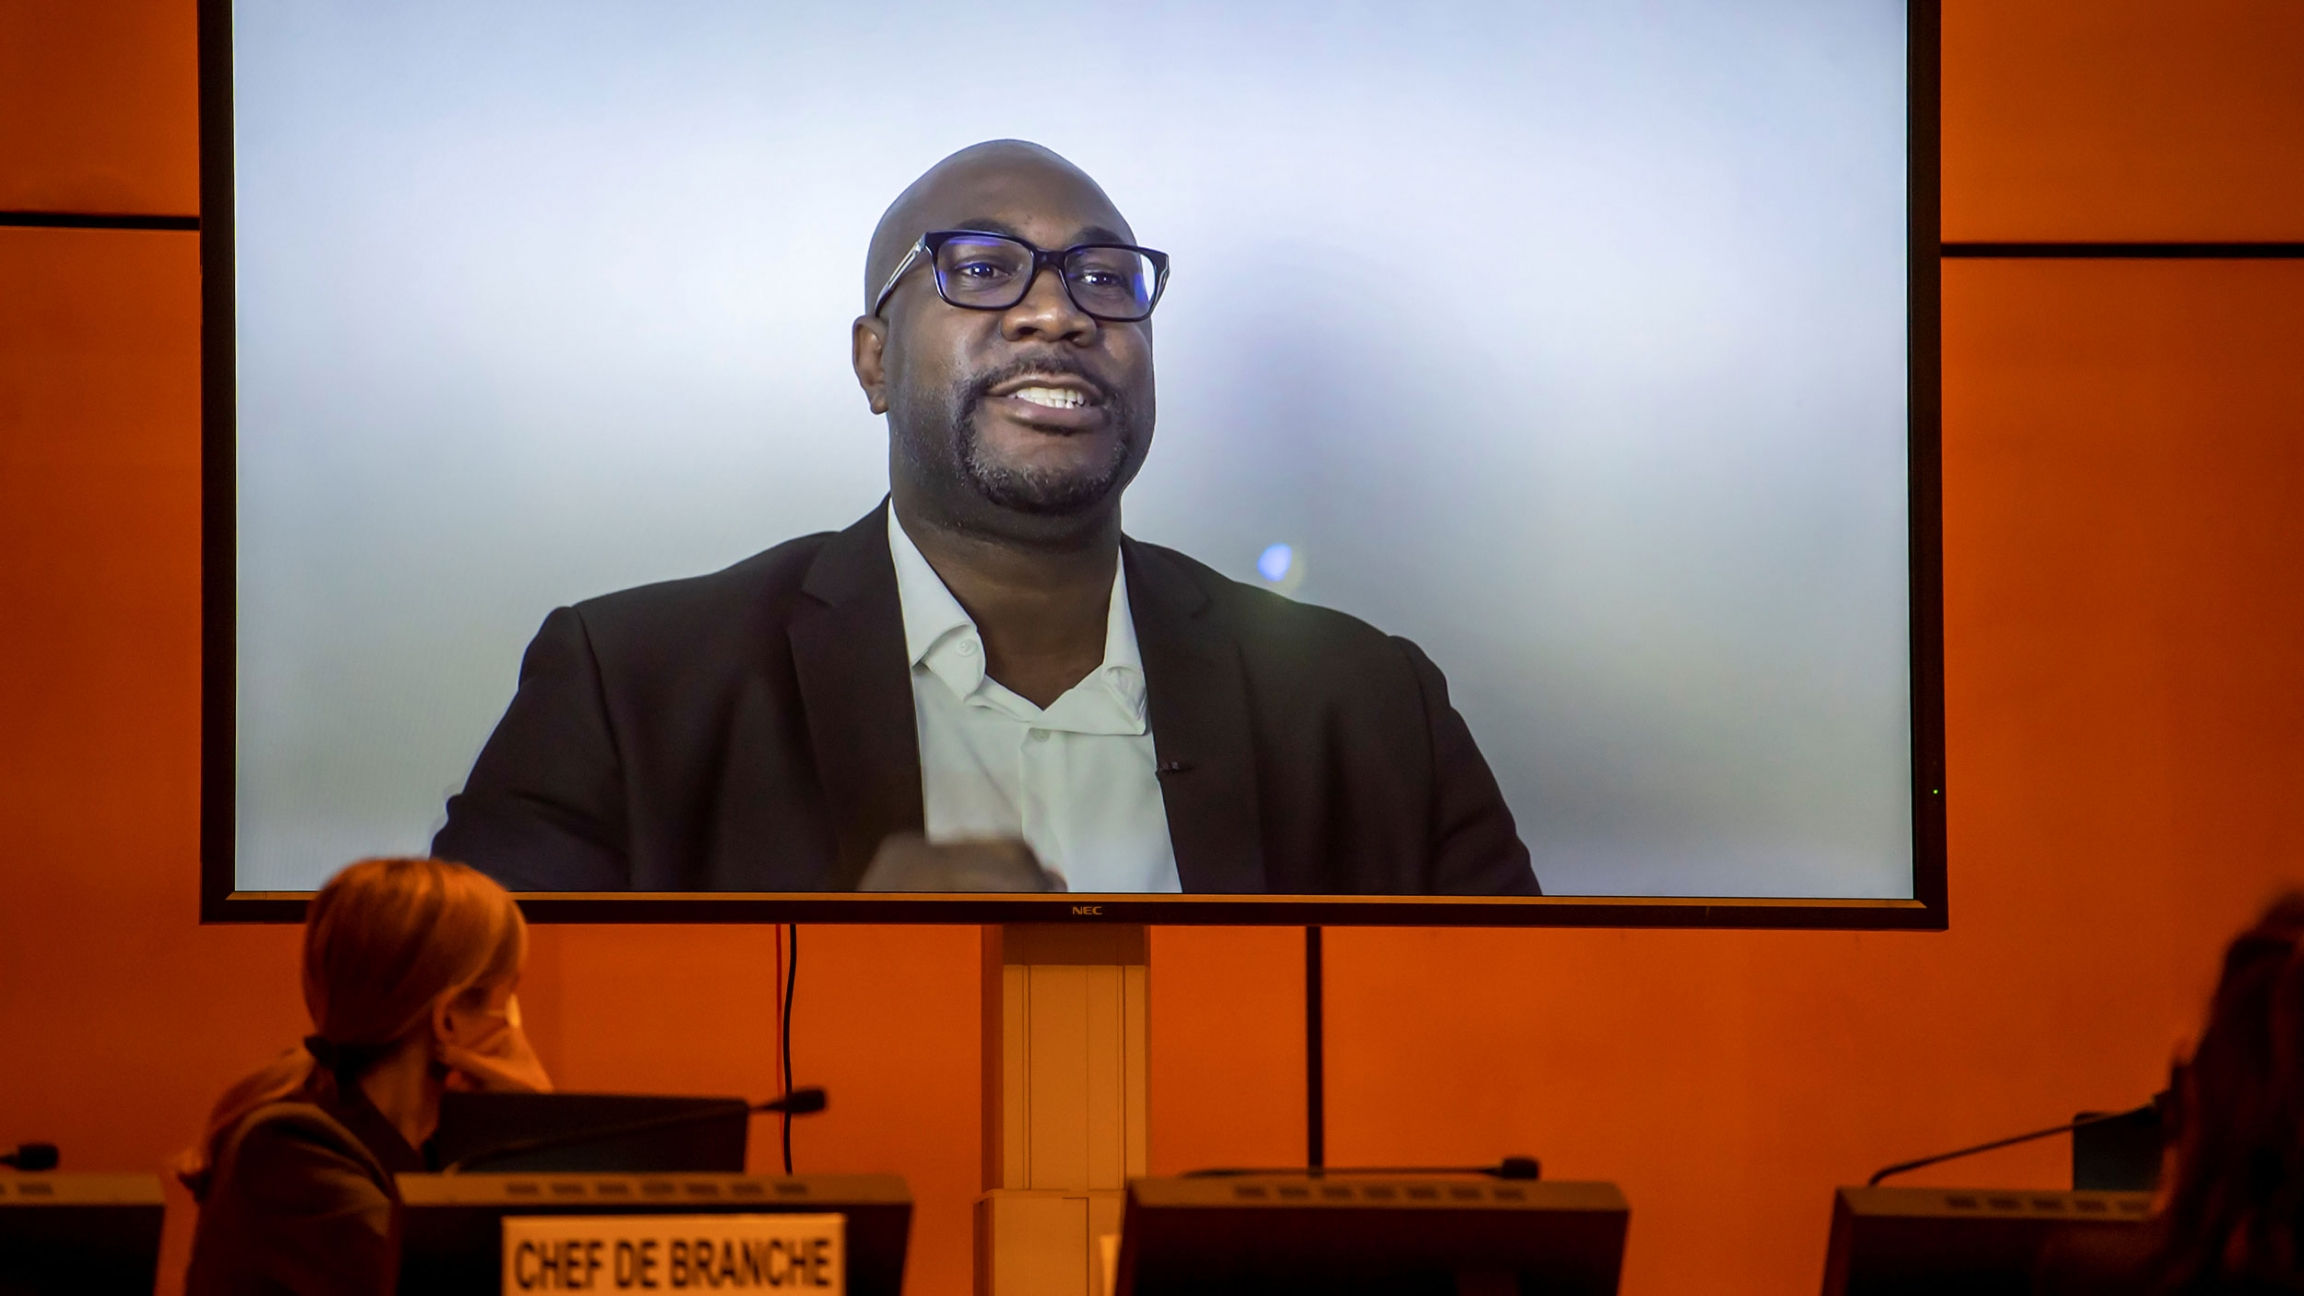 George Floyd's brother, Philonise Floyd, is shown wearing glasses and a blazer while speaking on screen via video message.